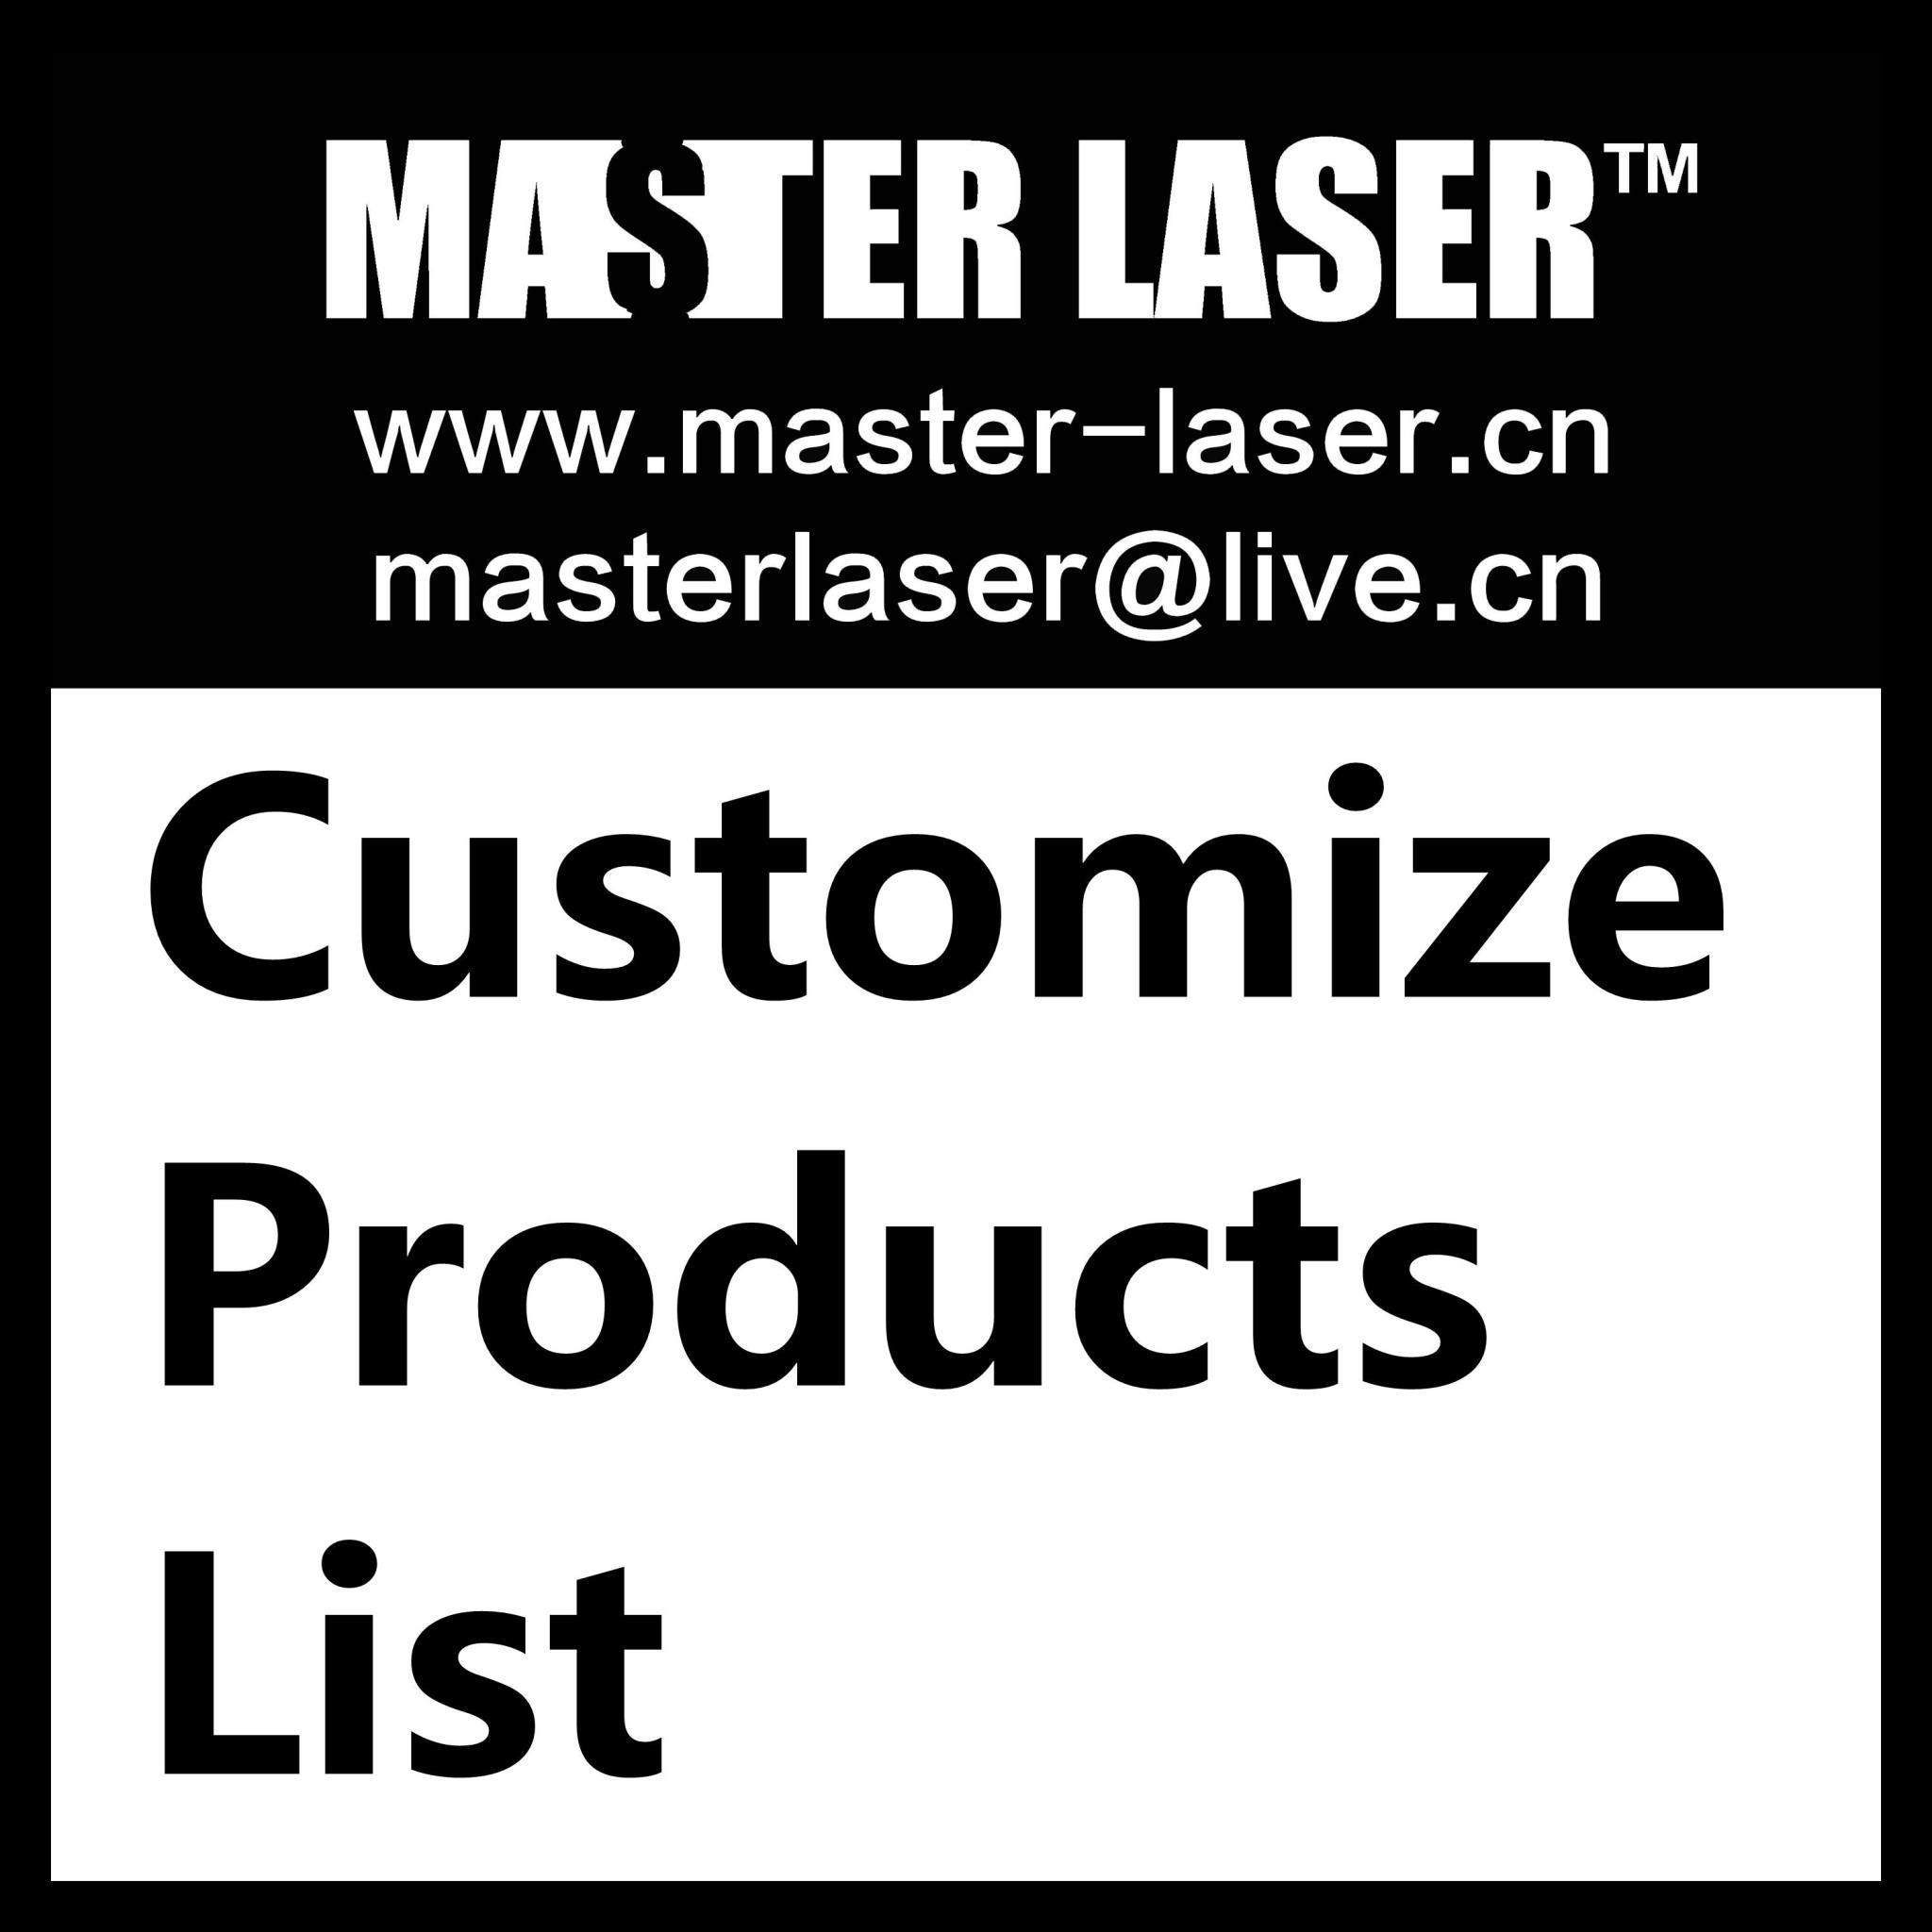 Customized Orders 007 Master Laser confidentiality orders